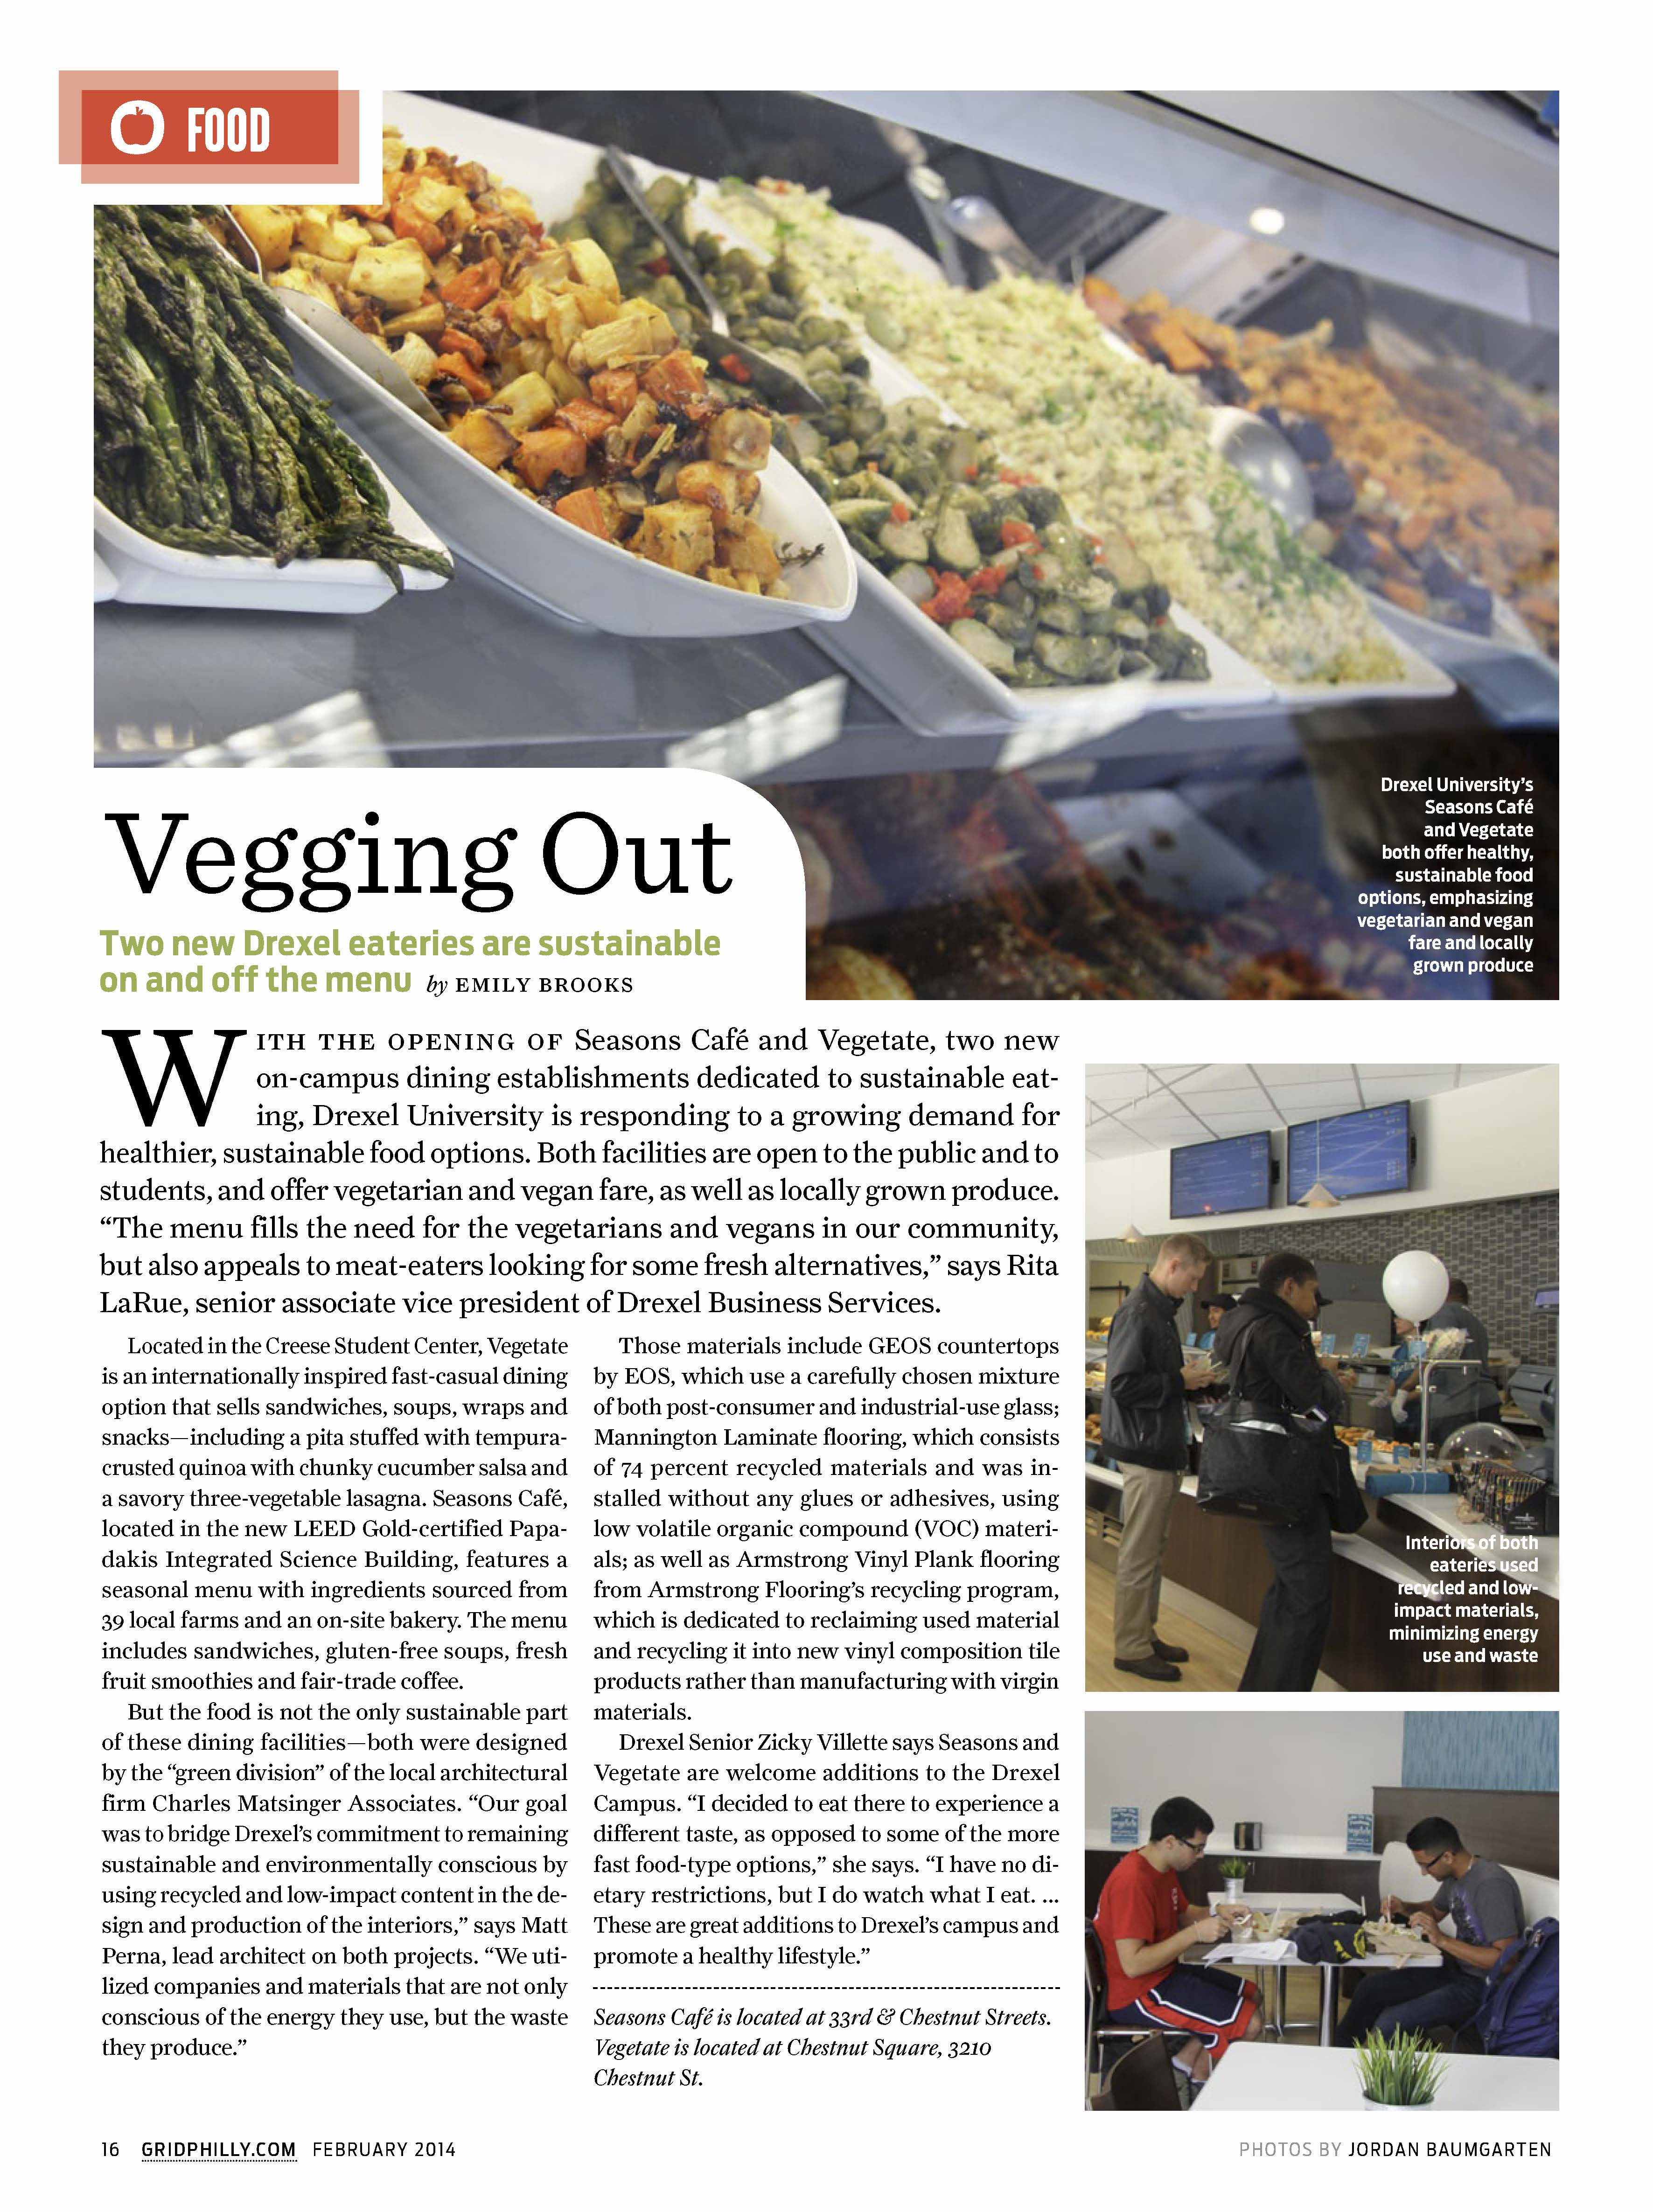 Grid_#58_February_Issue_Vegging_Out